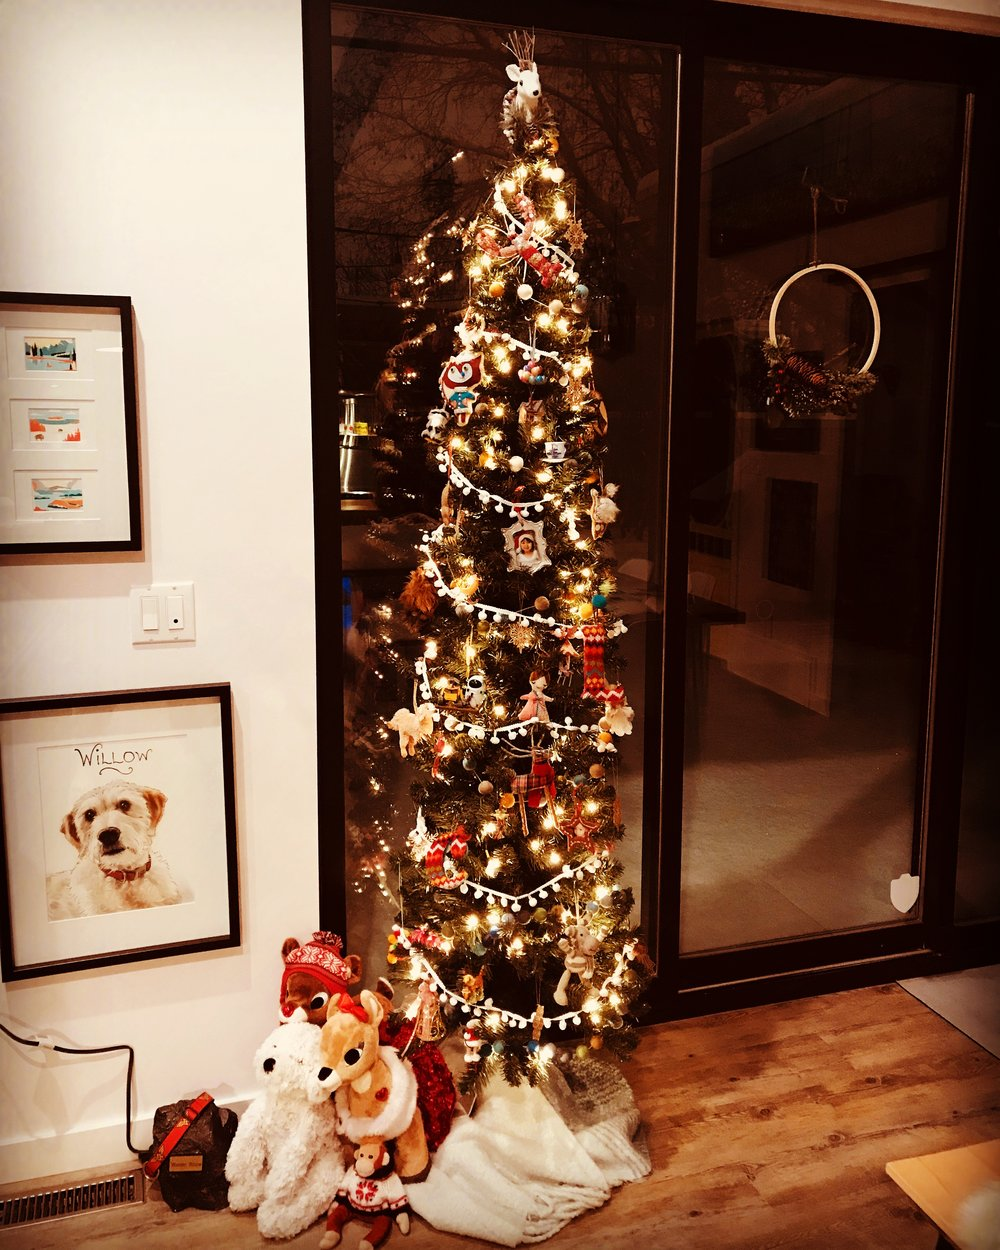 The #upstairstree